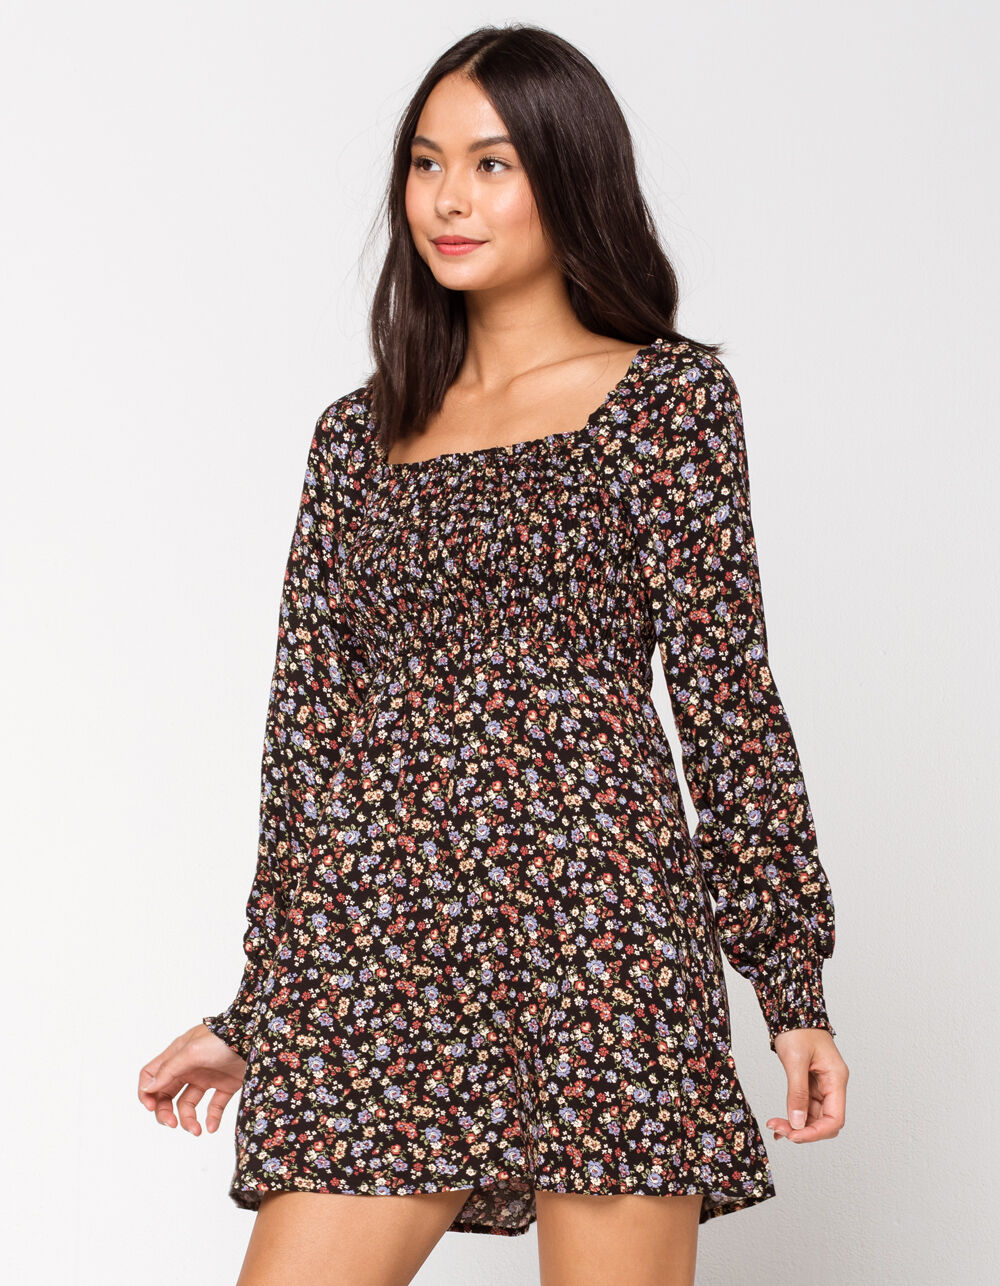 Image of MIMI CHICA Smocked Fit N Flare Dress